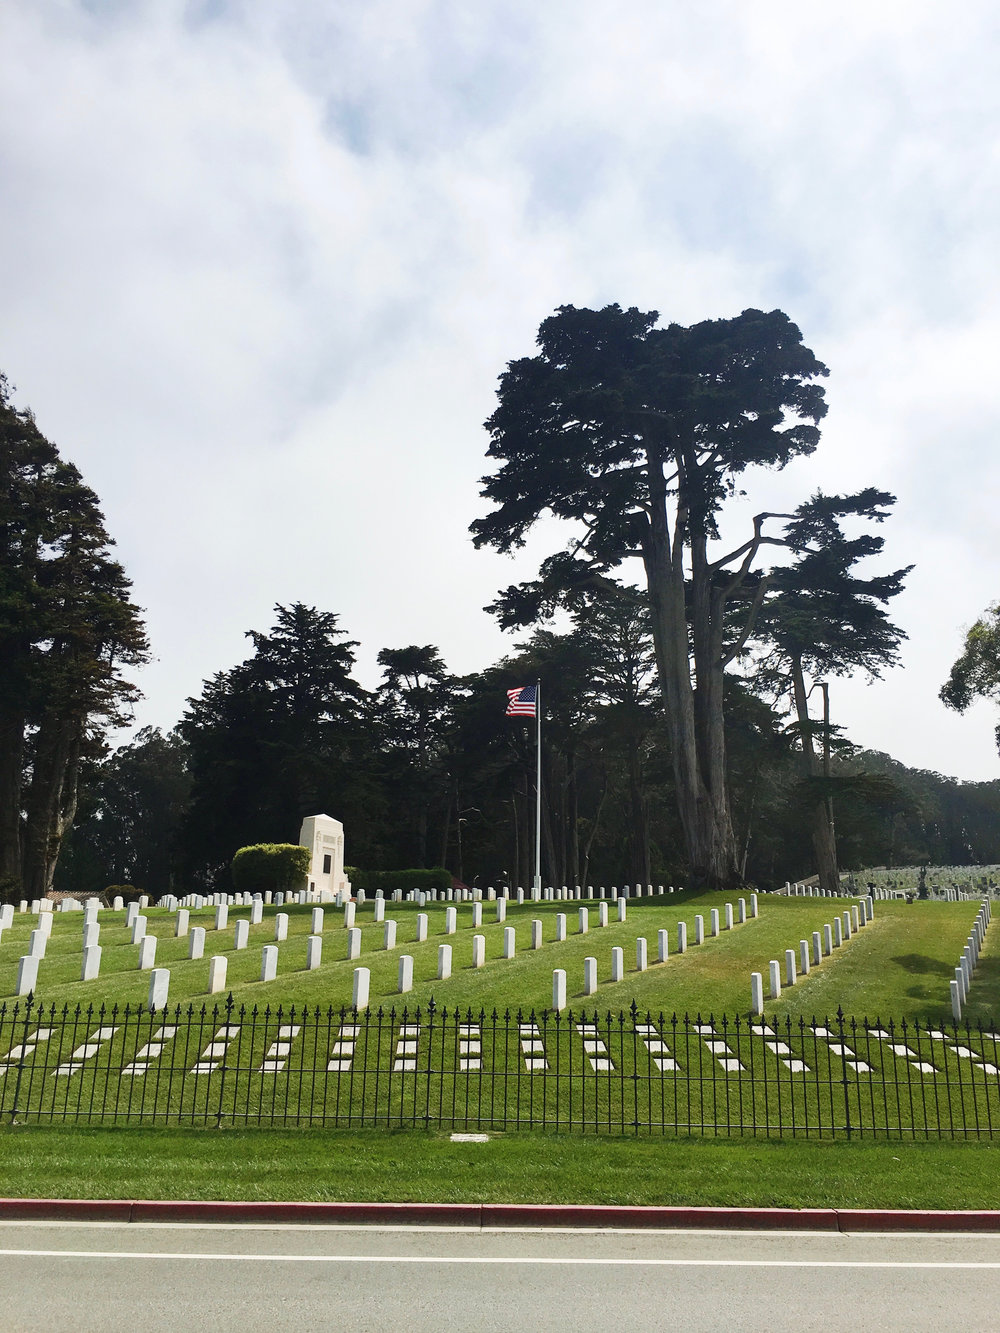 San Francisco National Cemetery for Military Veterans